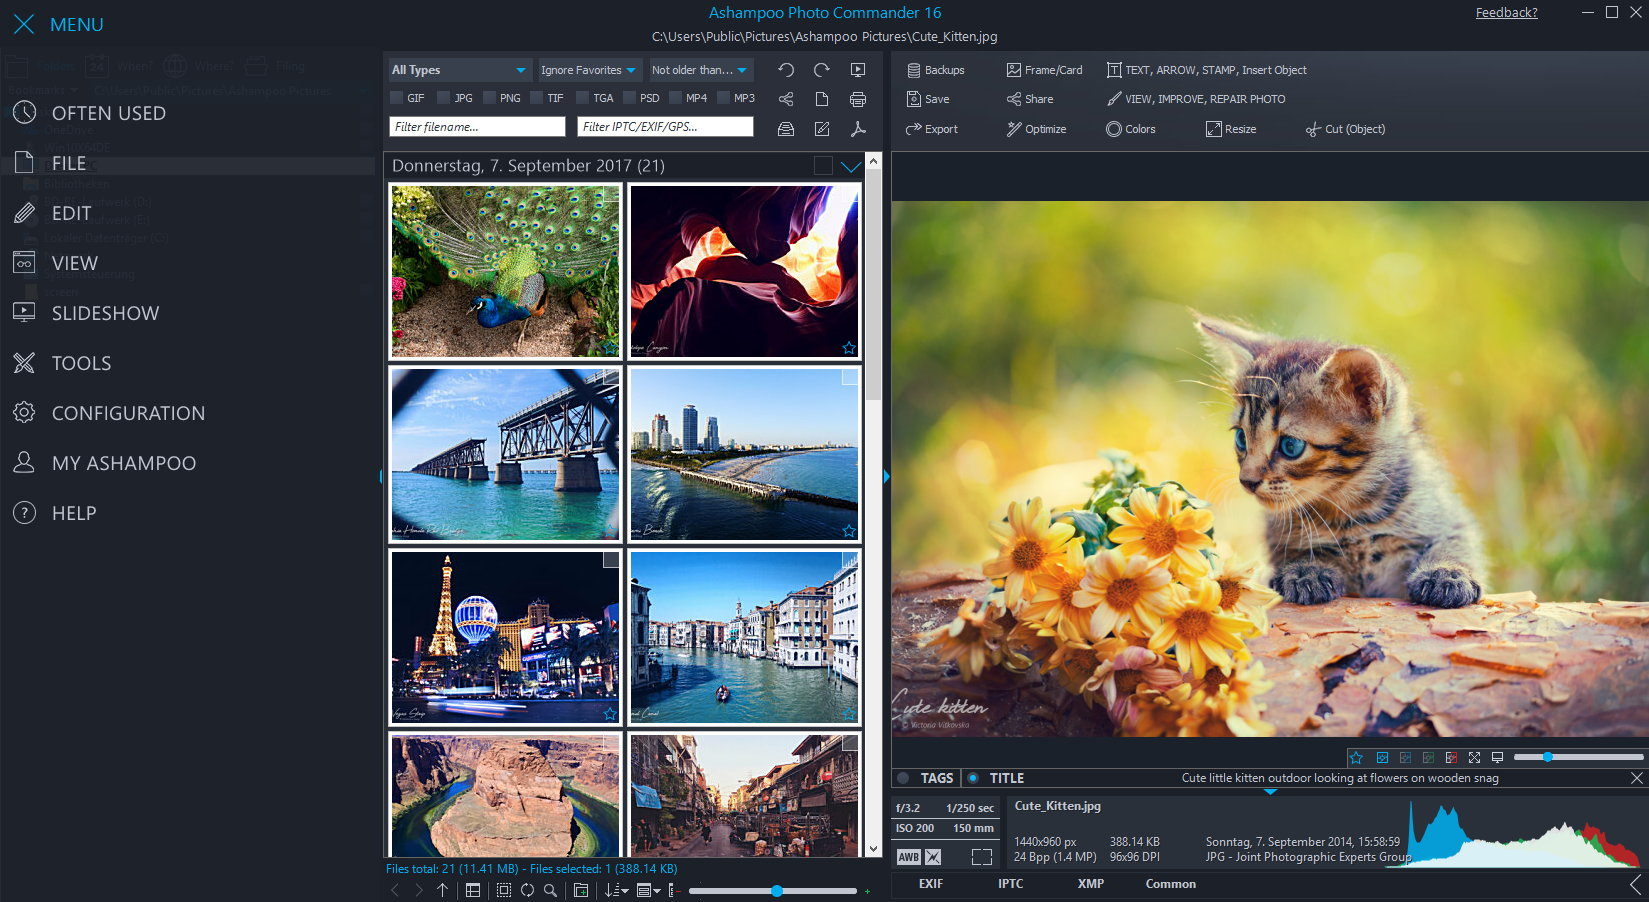 Design, Photo & Graphics Software, Ashampoo Photo Commander Screenshot